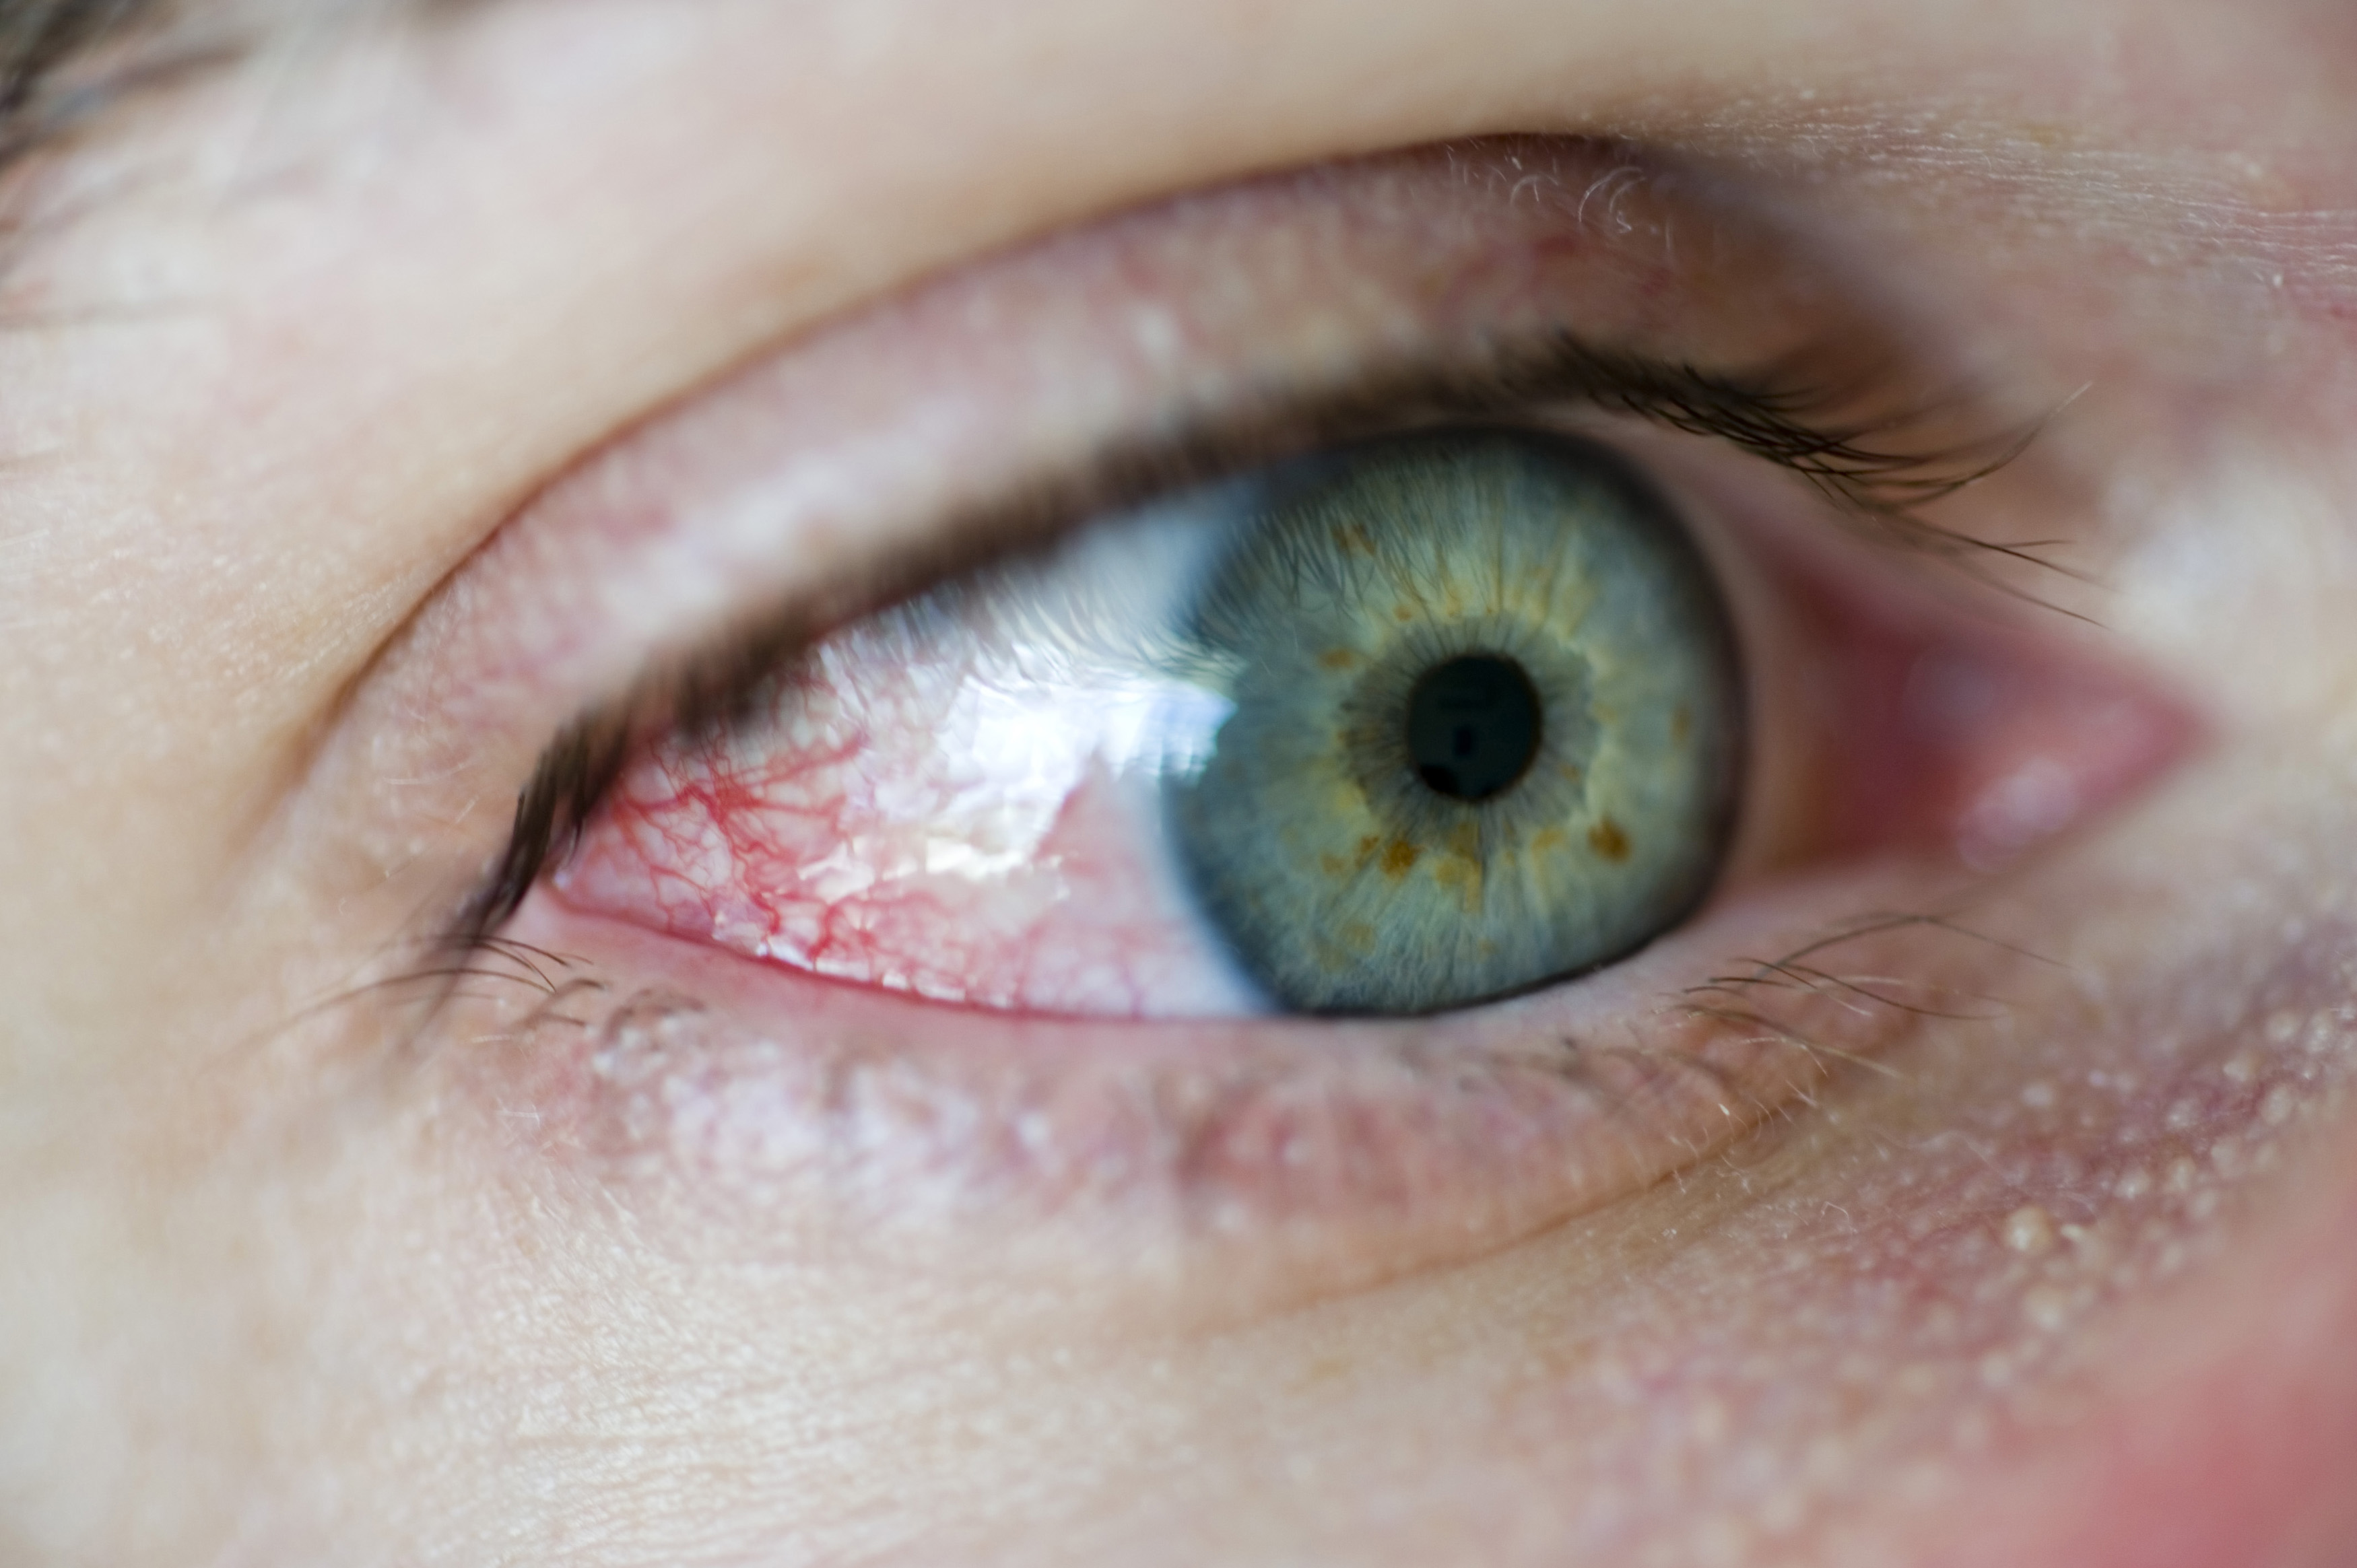 Close up detail of the human eye showing a network of tiny blood vessels in the corner and a green iris, looking away from the camera